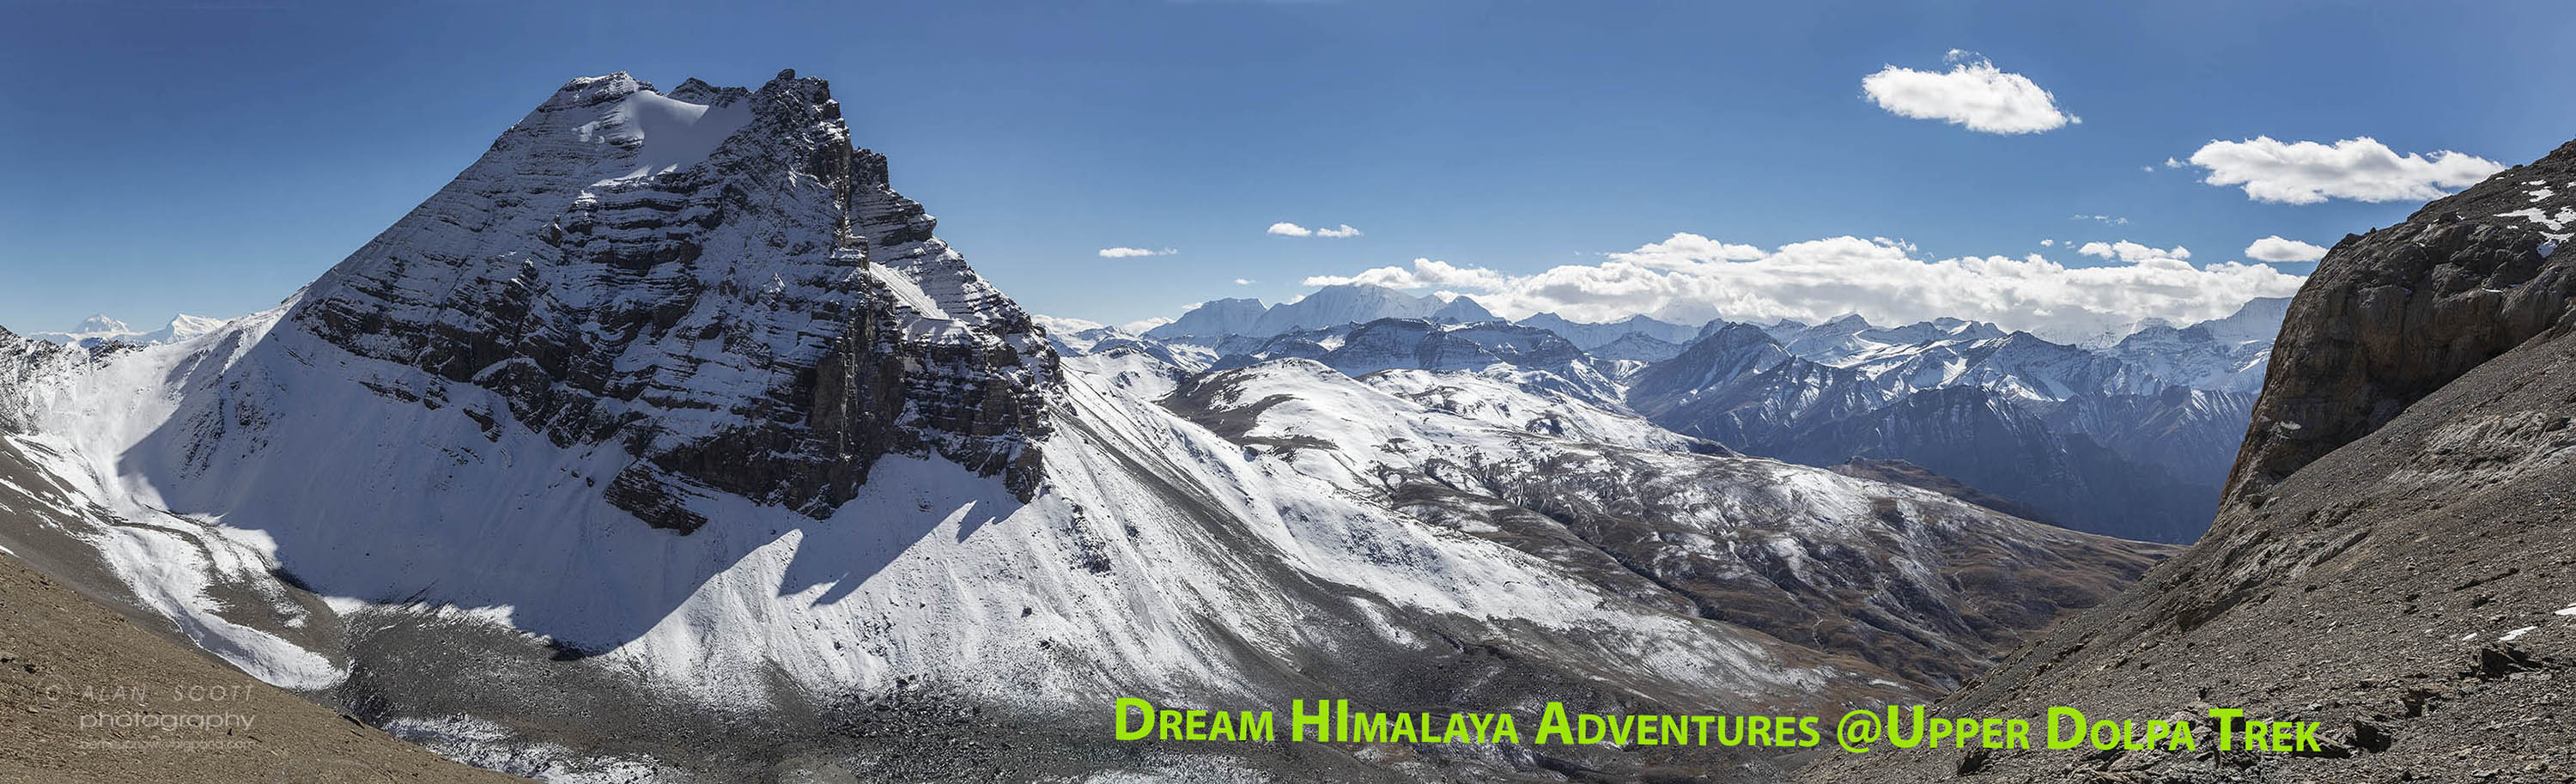 Peaks views Upper Dolpa Trek